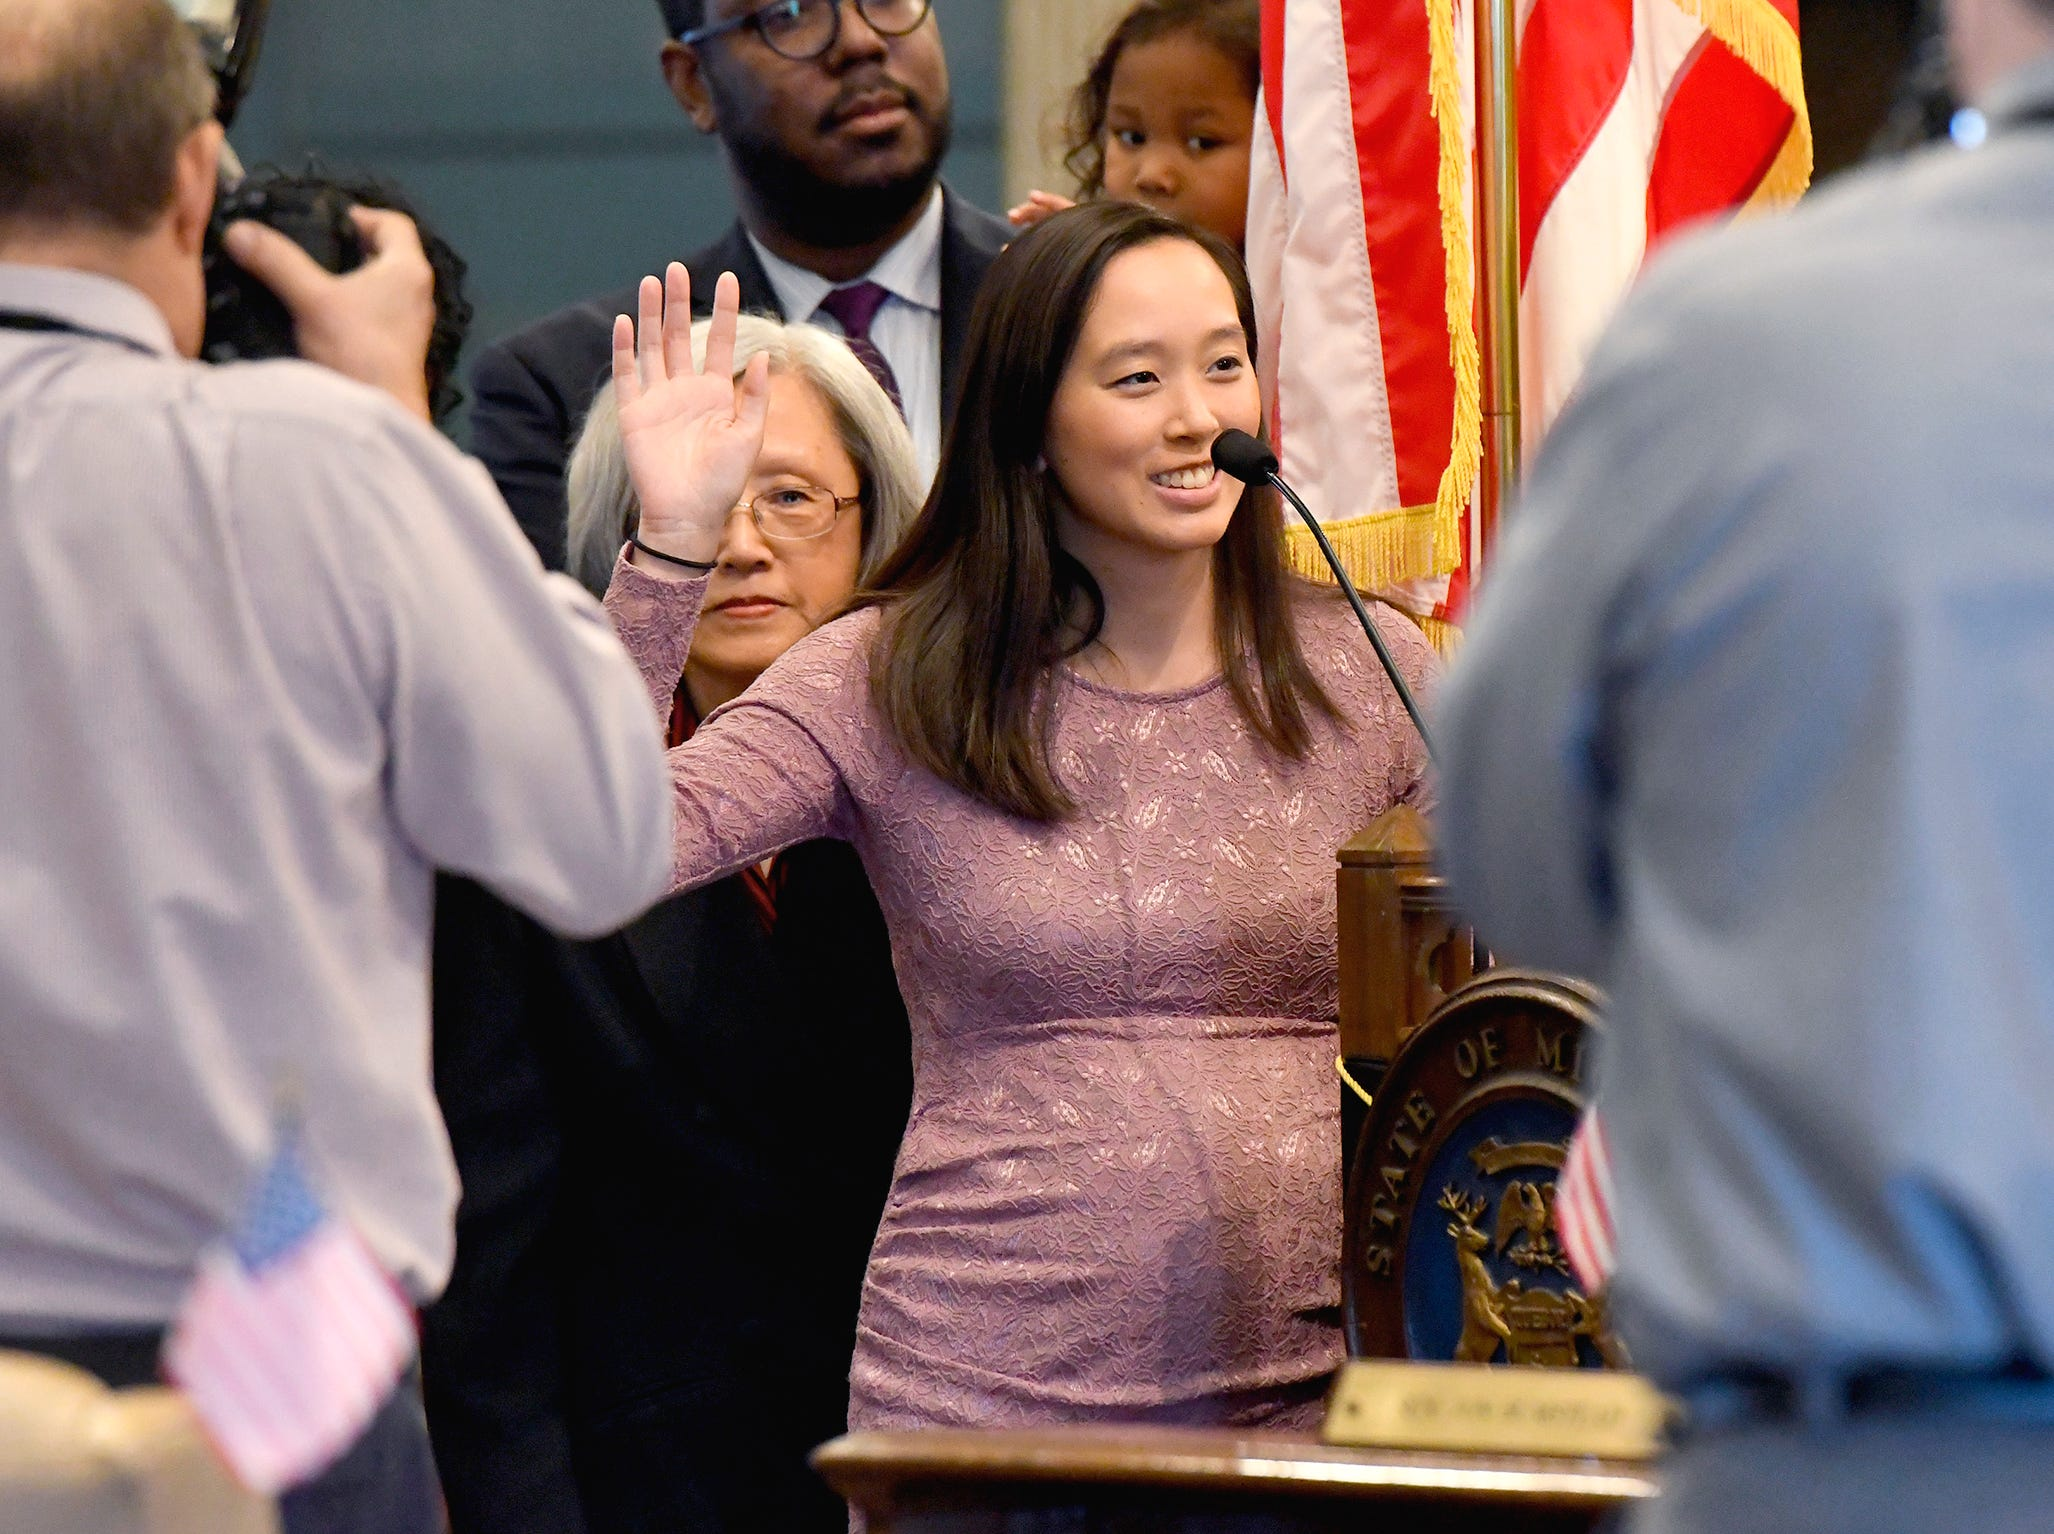 New State Sen. Stephanie Chang, D-District 1, is sworn in by Chief Justice Stephen Markman.